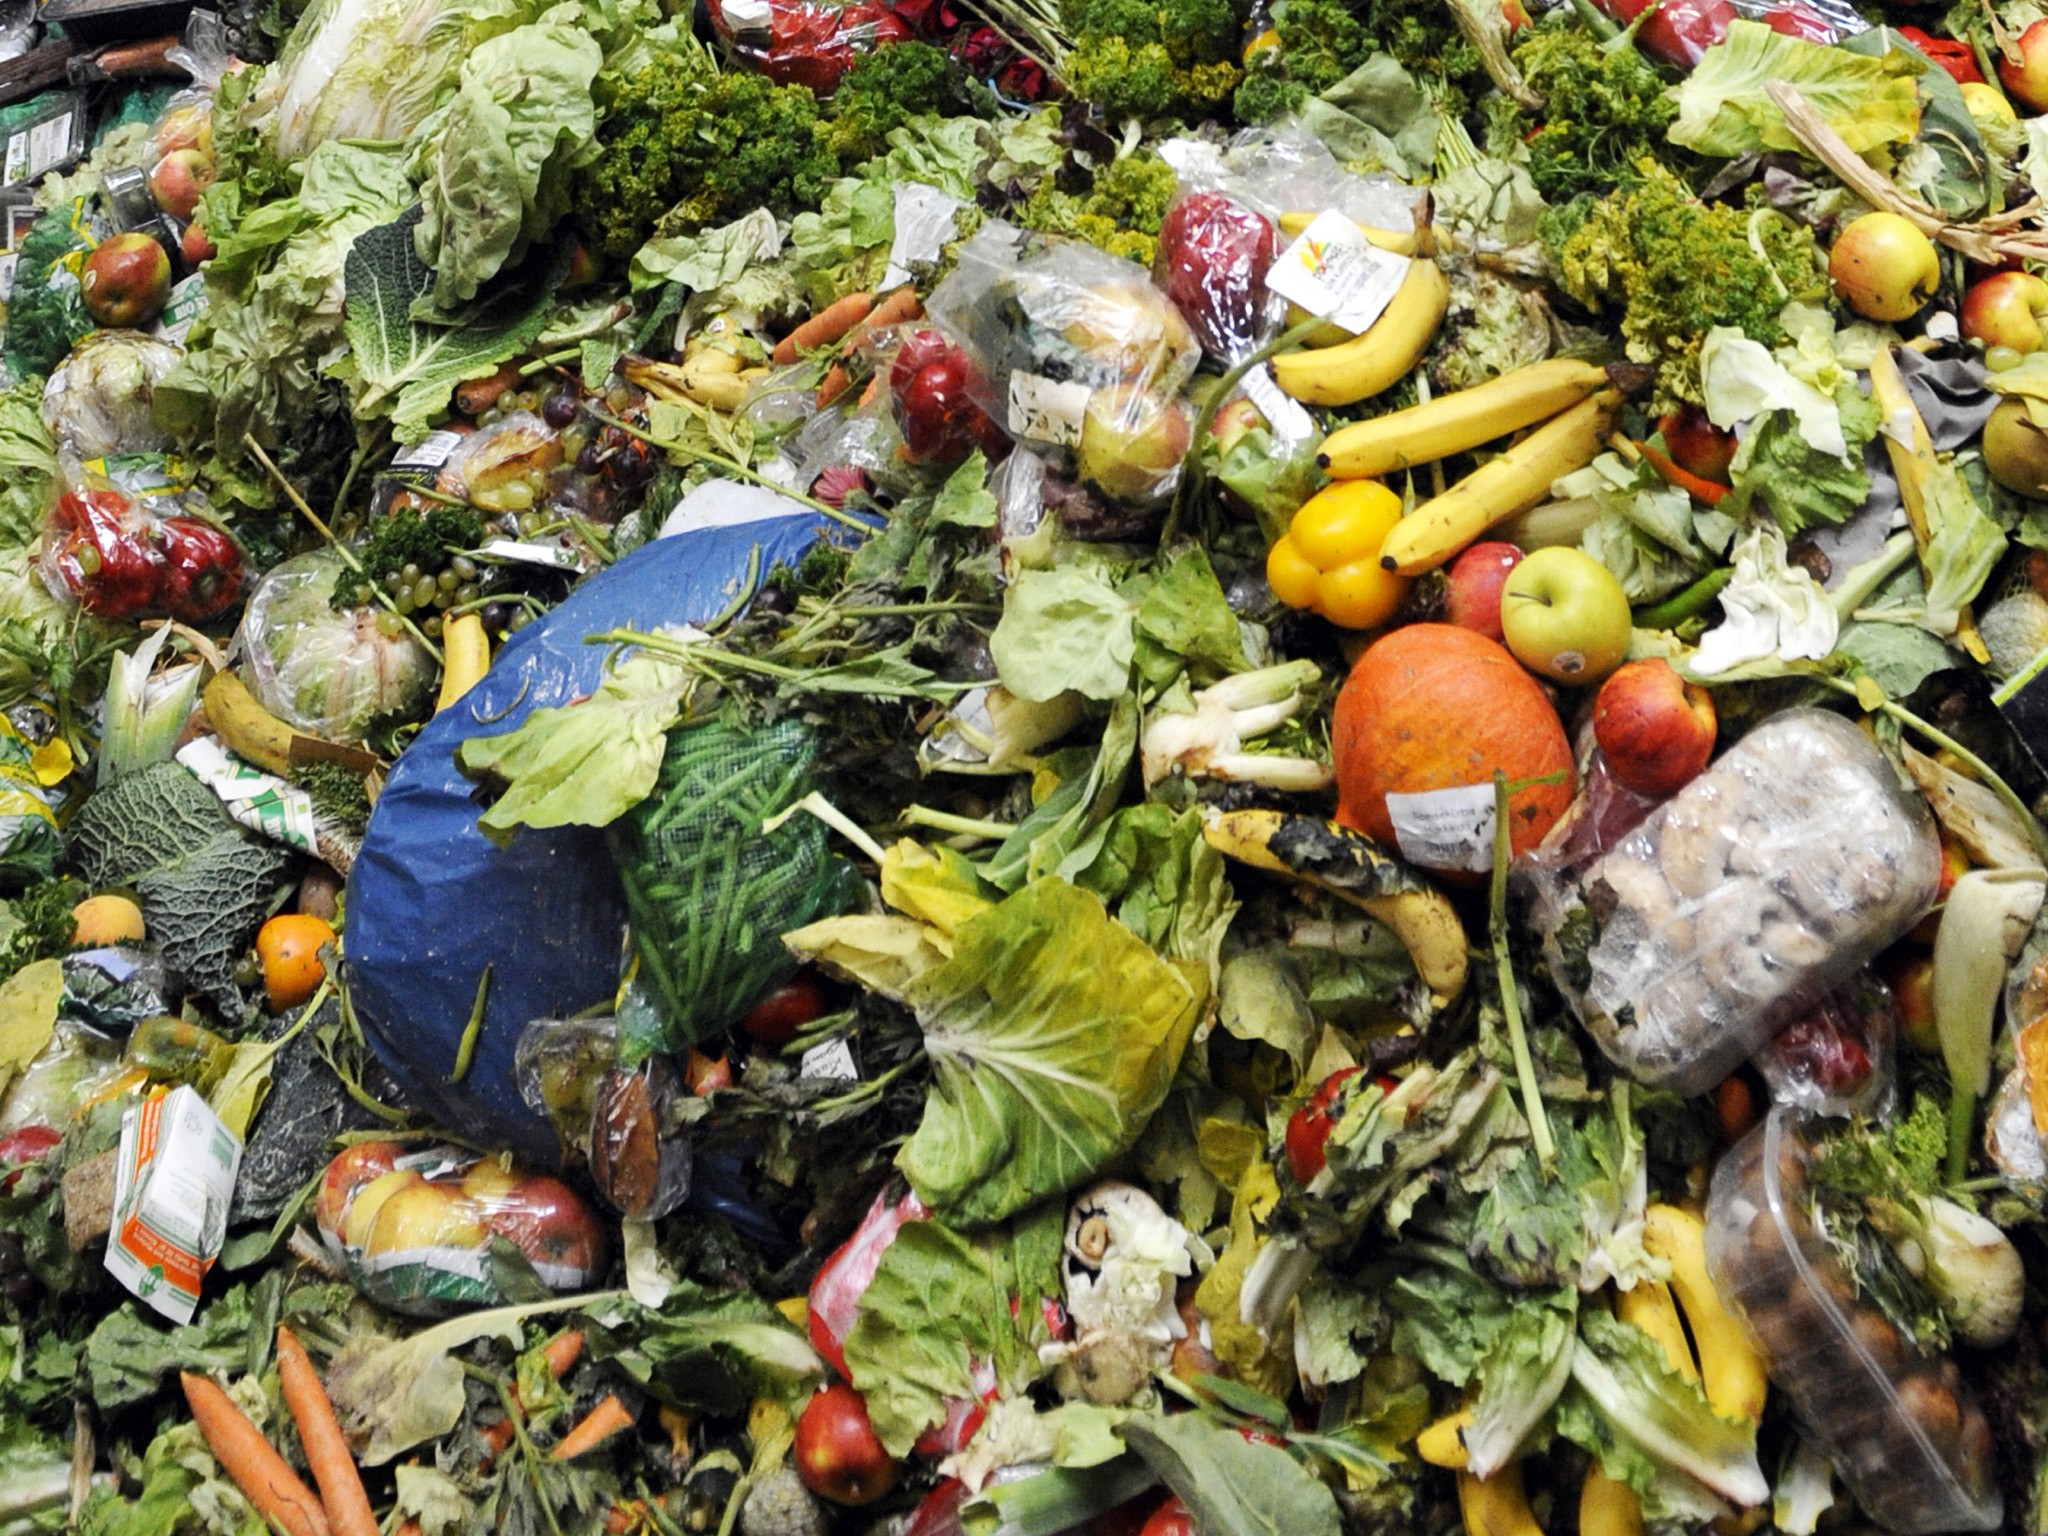 food waste, leftovers